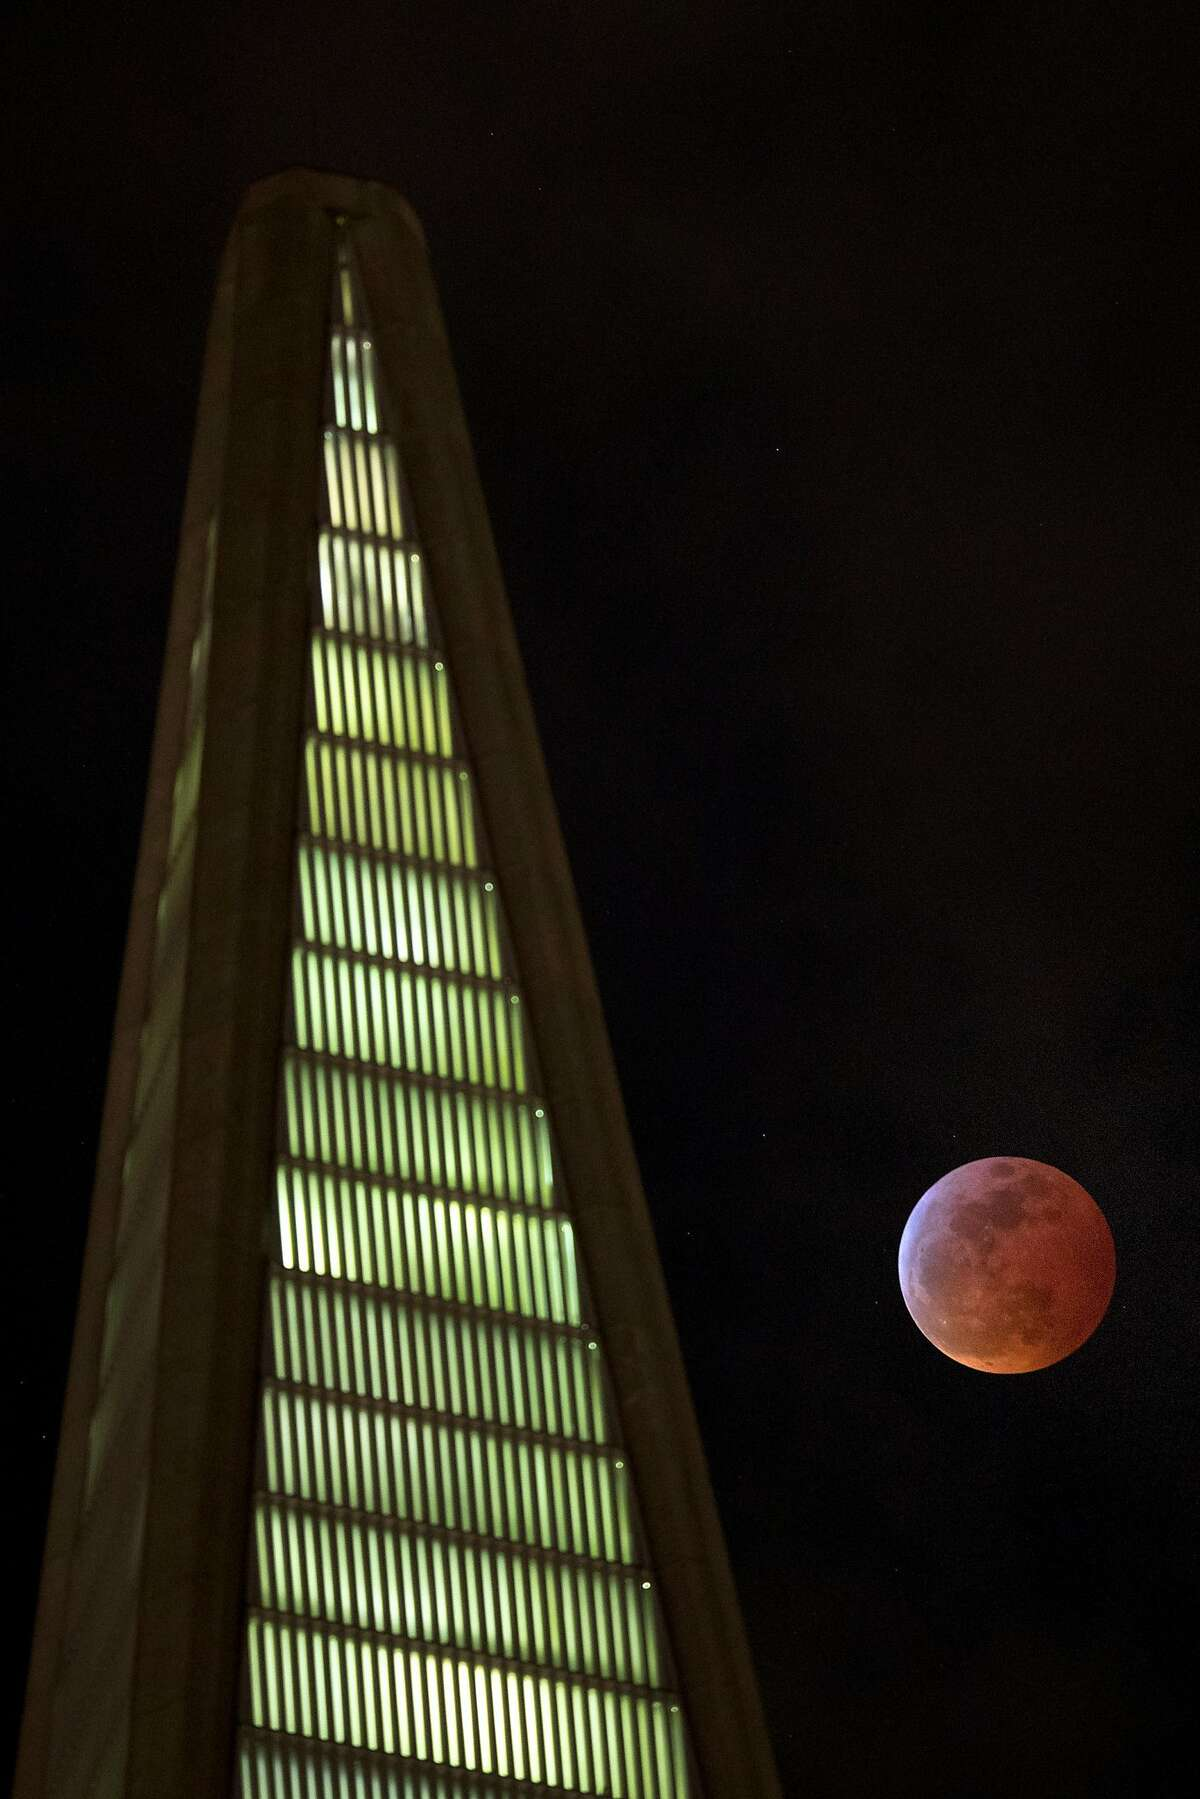 The fully-eclipsed Super Blood Wolf Moon is visible alongside the Transamerica Pyramid in San Francisco, Calif., on Sunday, January 20, 2019.